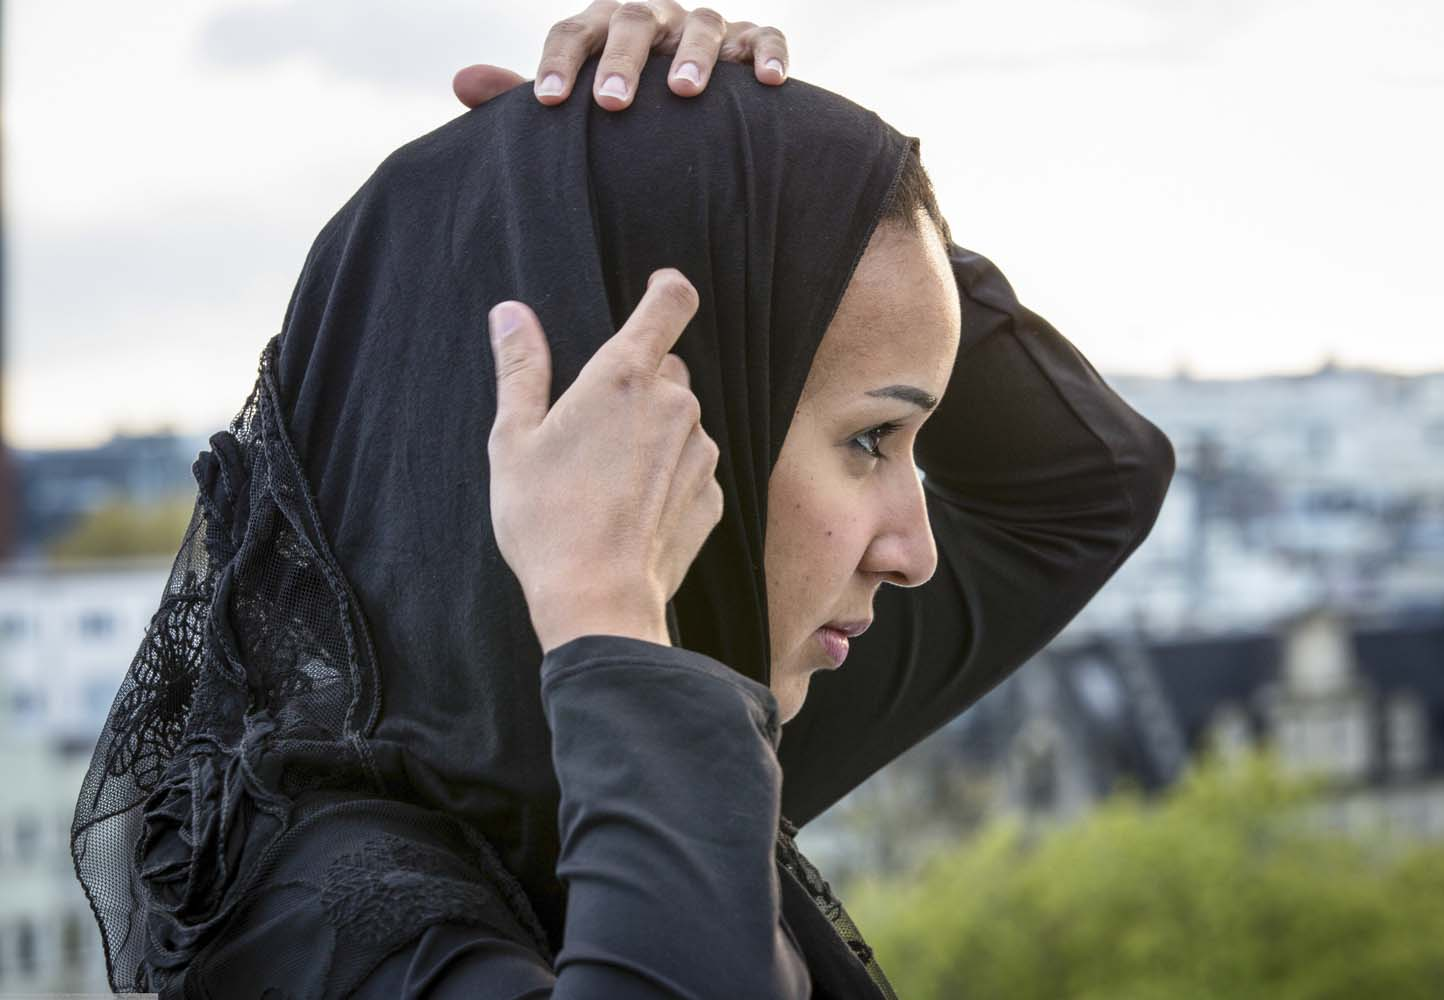 Manal al-Sharif, Oslo, Norway, 2012. (Oslo Freedom Forum)